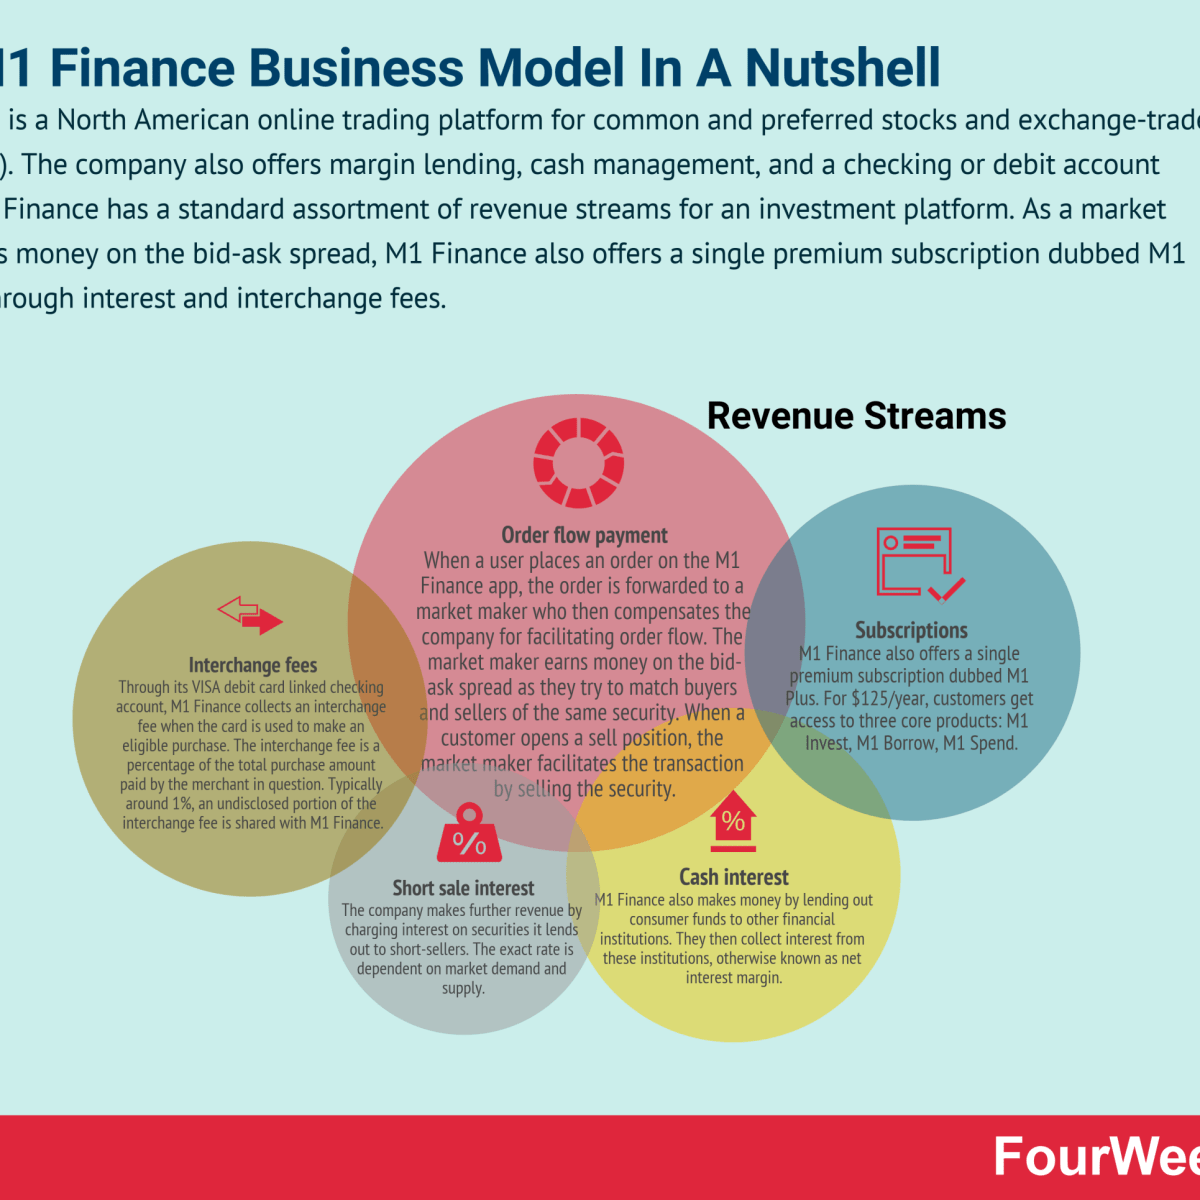 How Does M1 Finance Make Money? The M1 Finance Business Model In A Nutshell